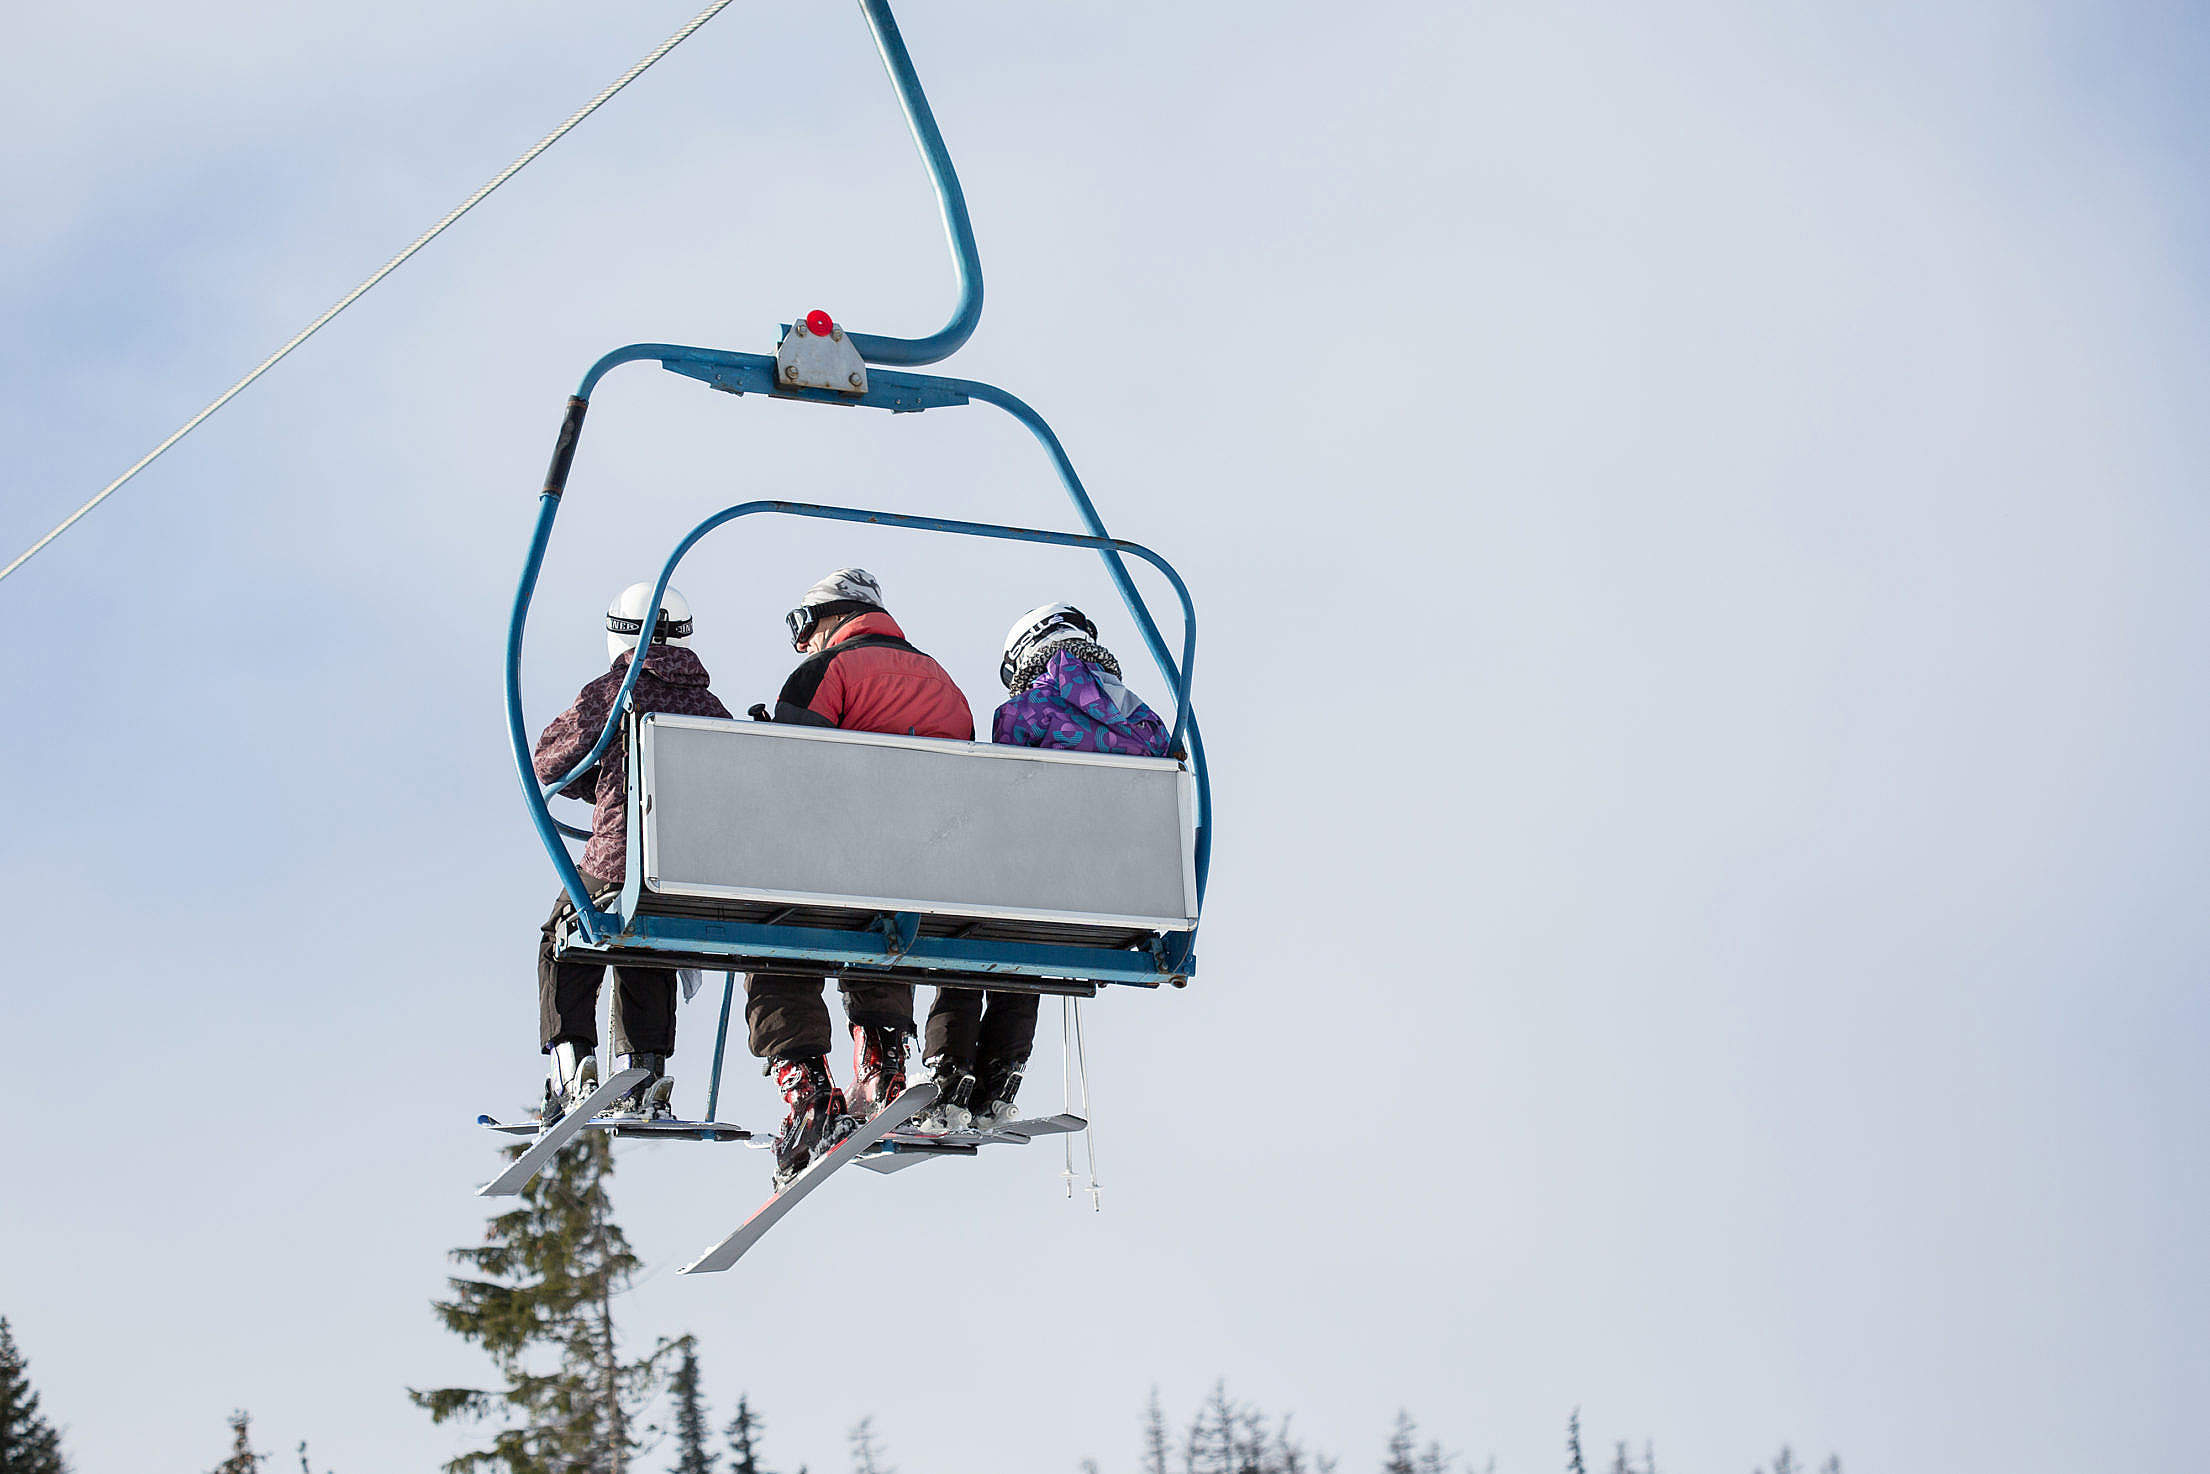 Three Skiers on Ski Lift Free Stock Photo